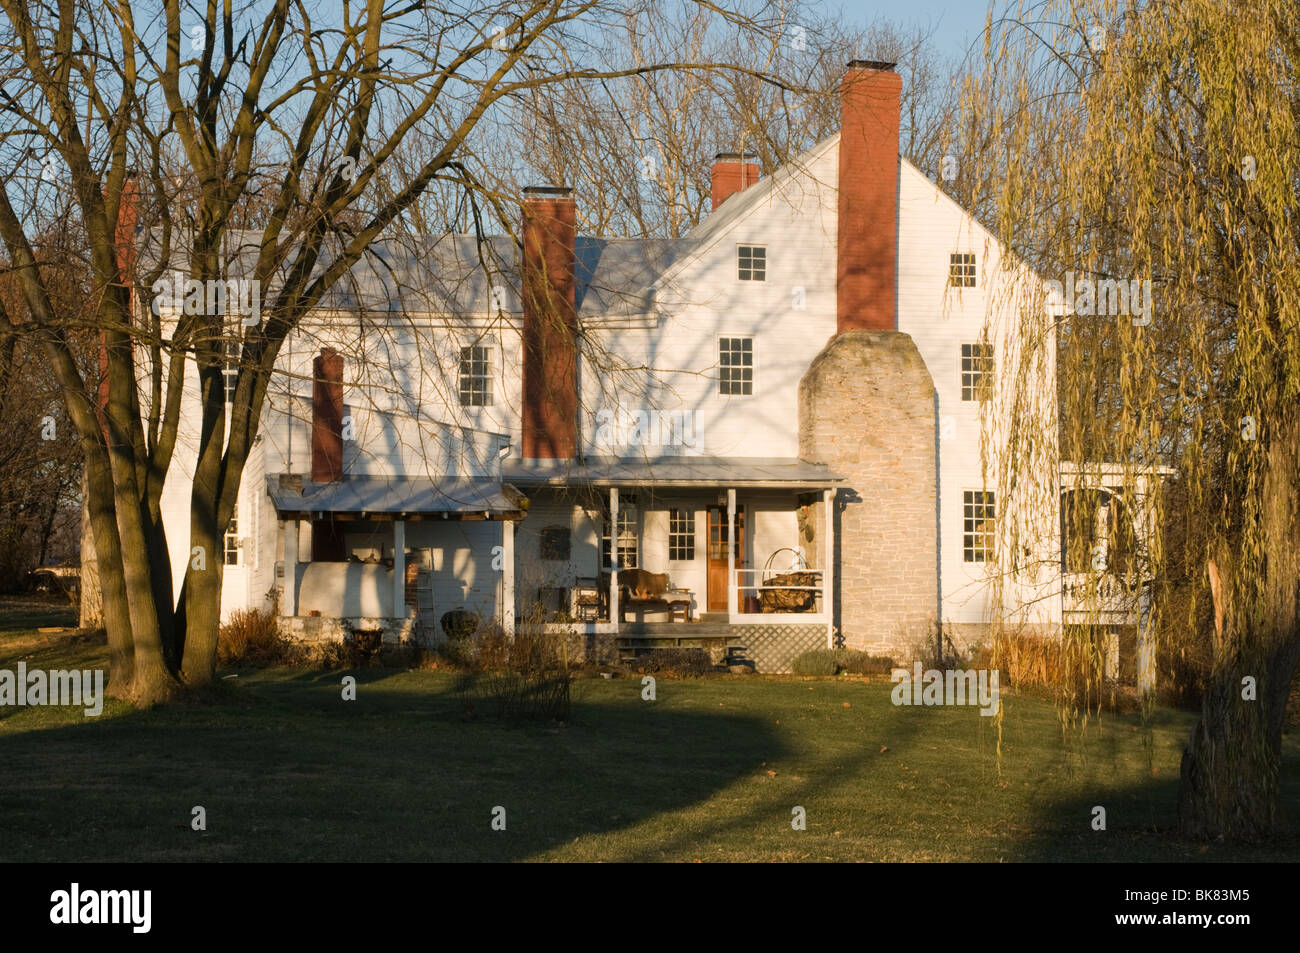 Virginia Farmhouse In The Autumn Light Featuring Three Chimneys And Stock Photo Alamy